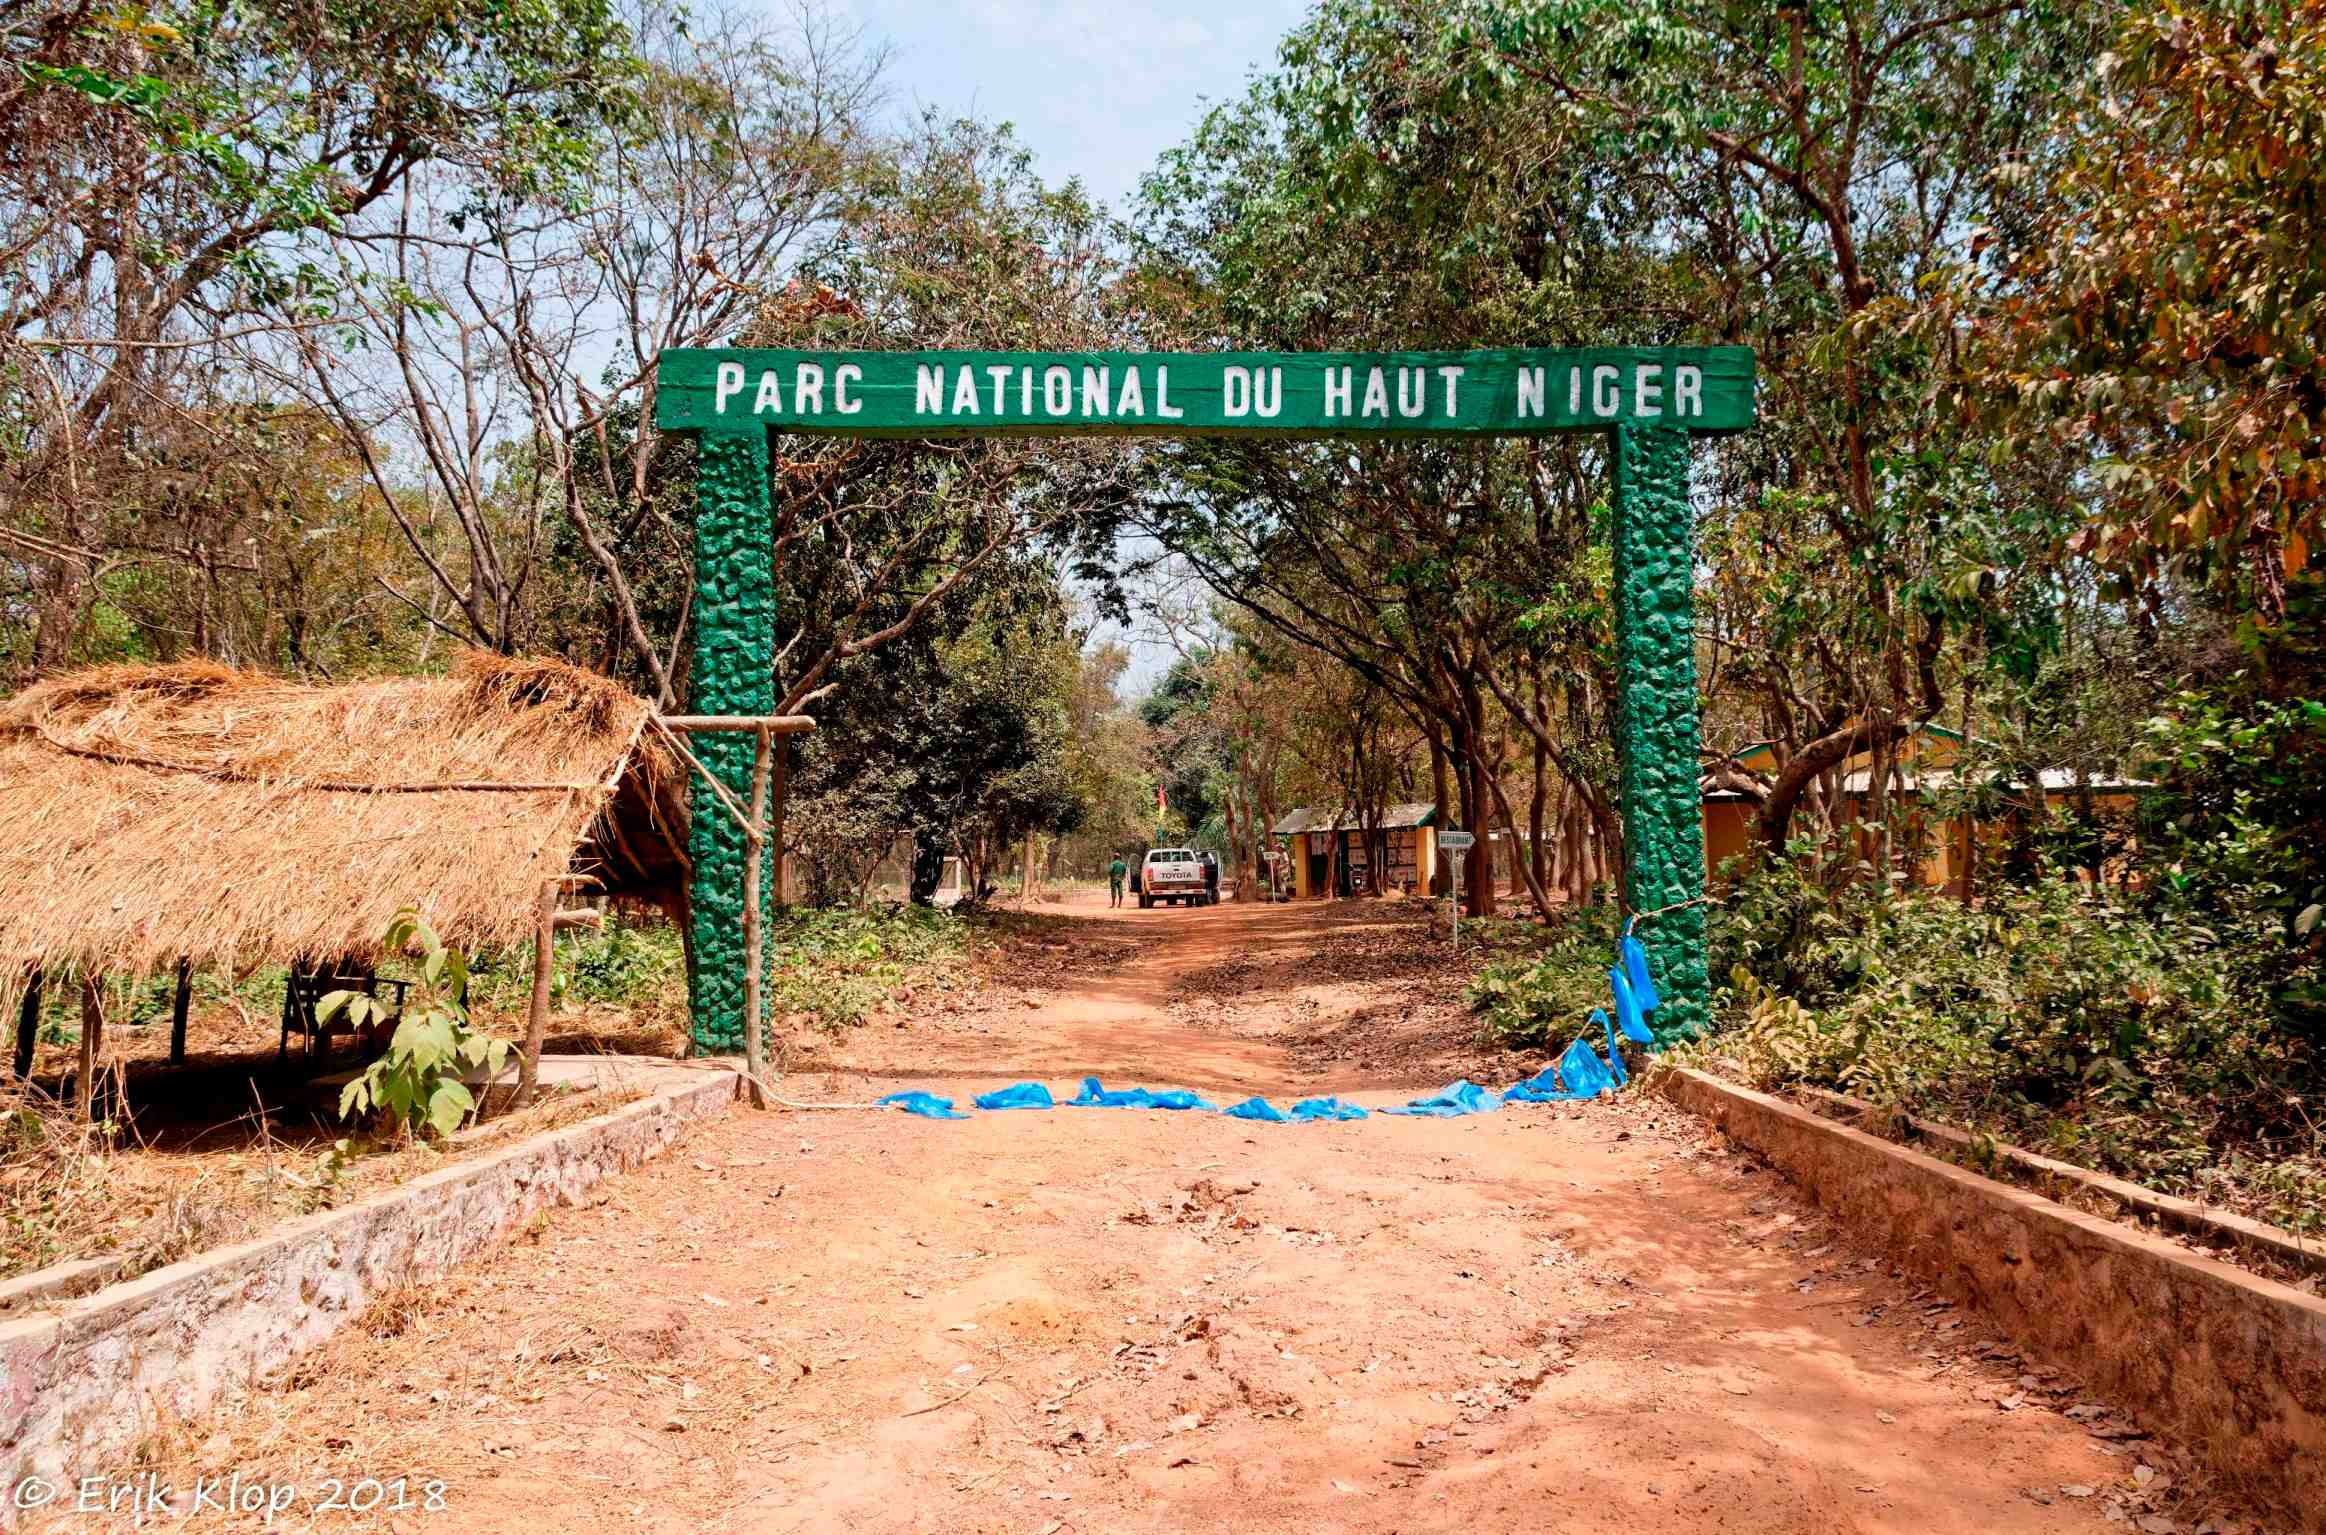 Parc National du Haut Niger